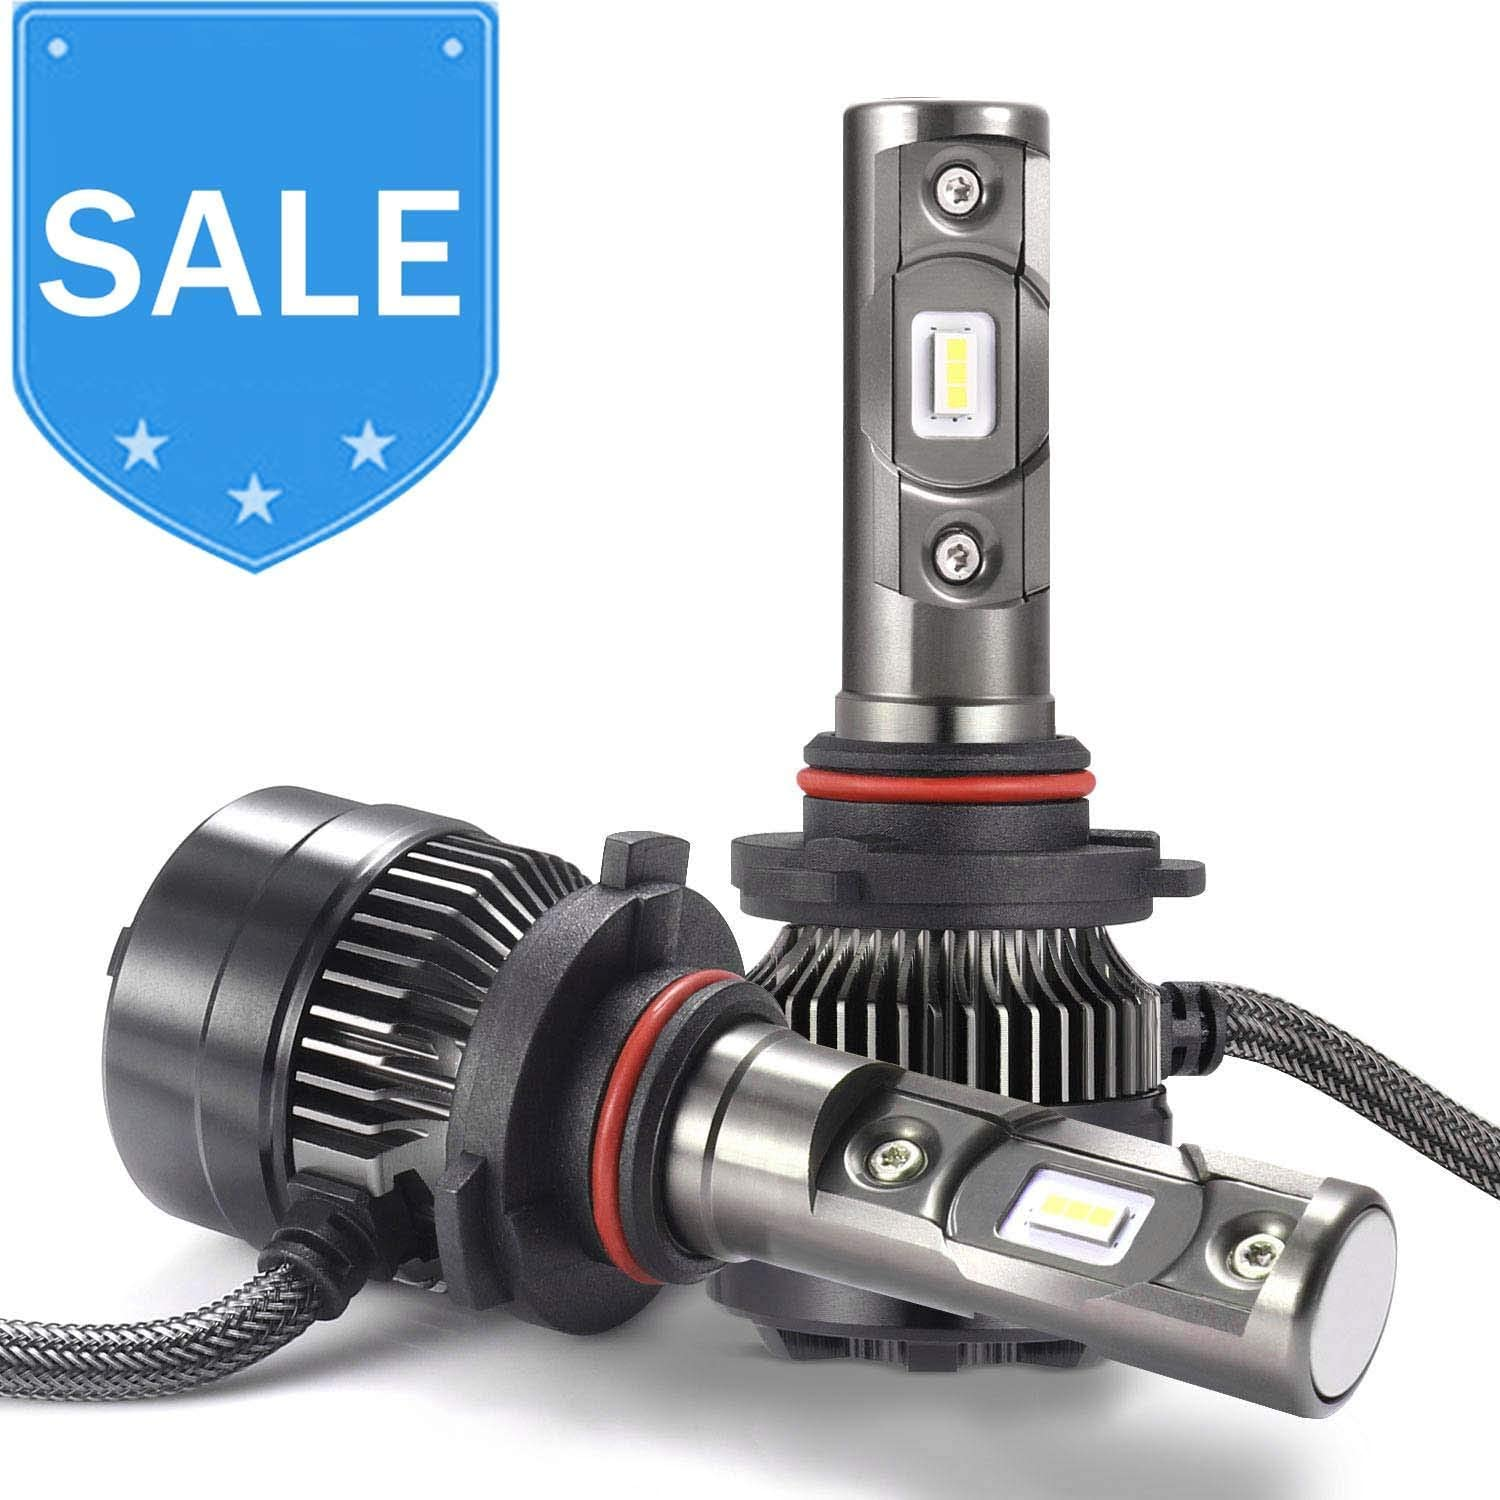 7200LM Fog Light All-in-one Waterproof Conversion Kit 9005 AUTLEAD LED Headlight Bulbs High//Low Beams 6500K Cool White HB3, H10 DOT Approved CSP Chips